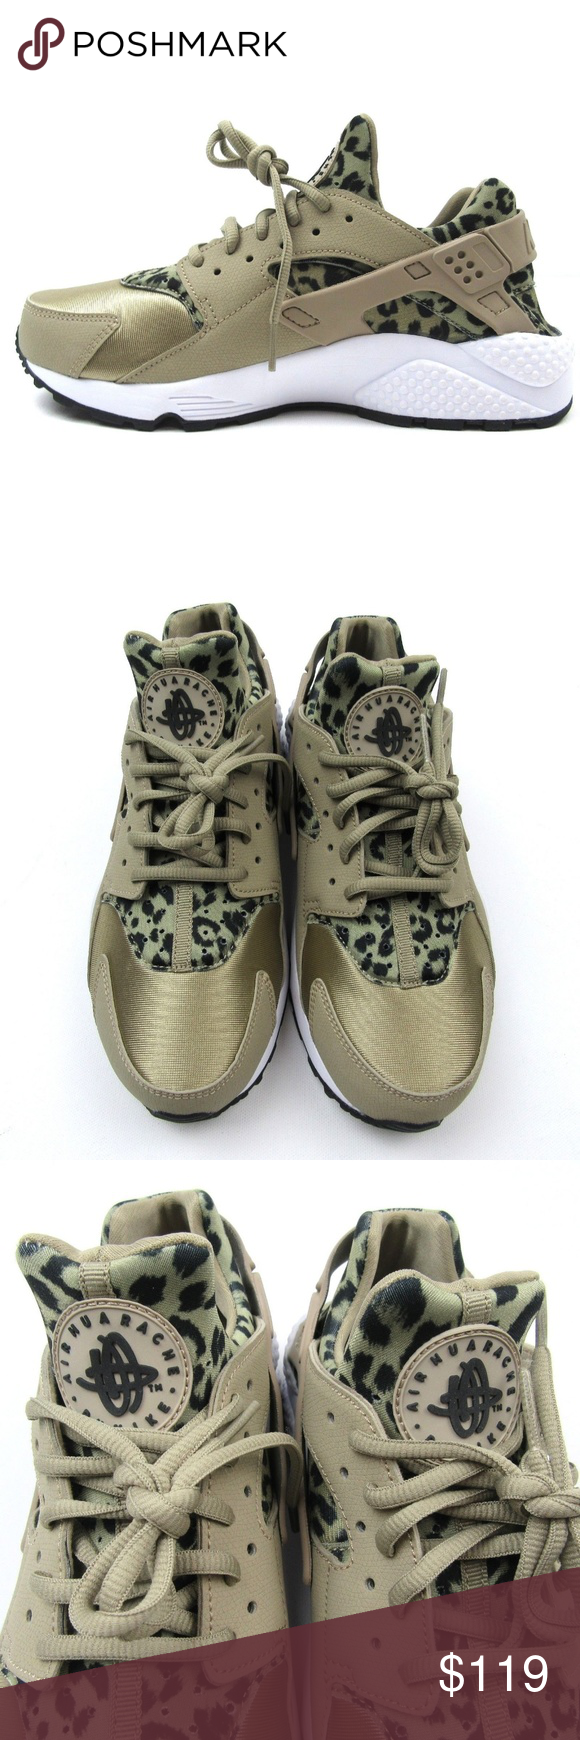 8e545c374ea Nike Air Huarache Women s Size 7.5 Shoes NEW Nike Air Huarache Running  Shoes Leopard Animal Print Style - 725076-200 Women s Size 7.5 Brand New  without a ...